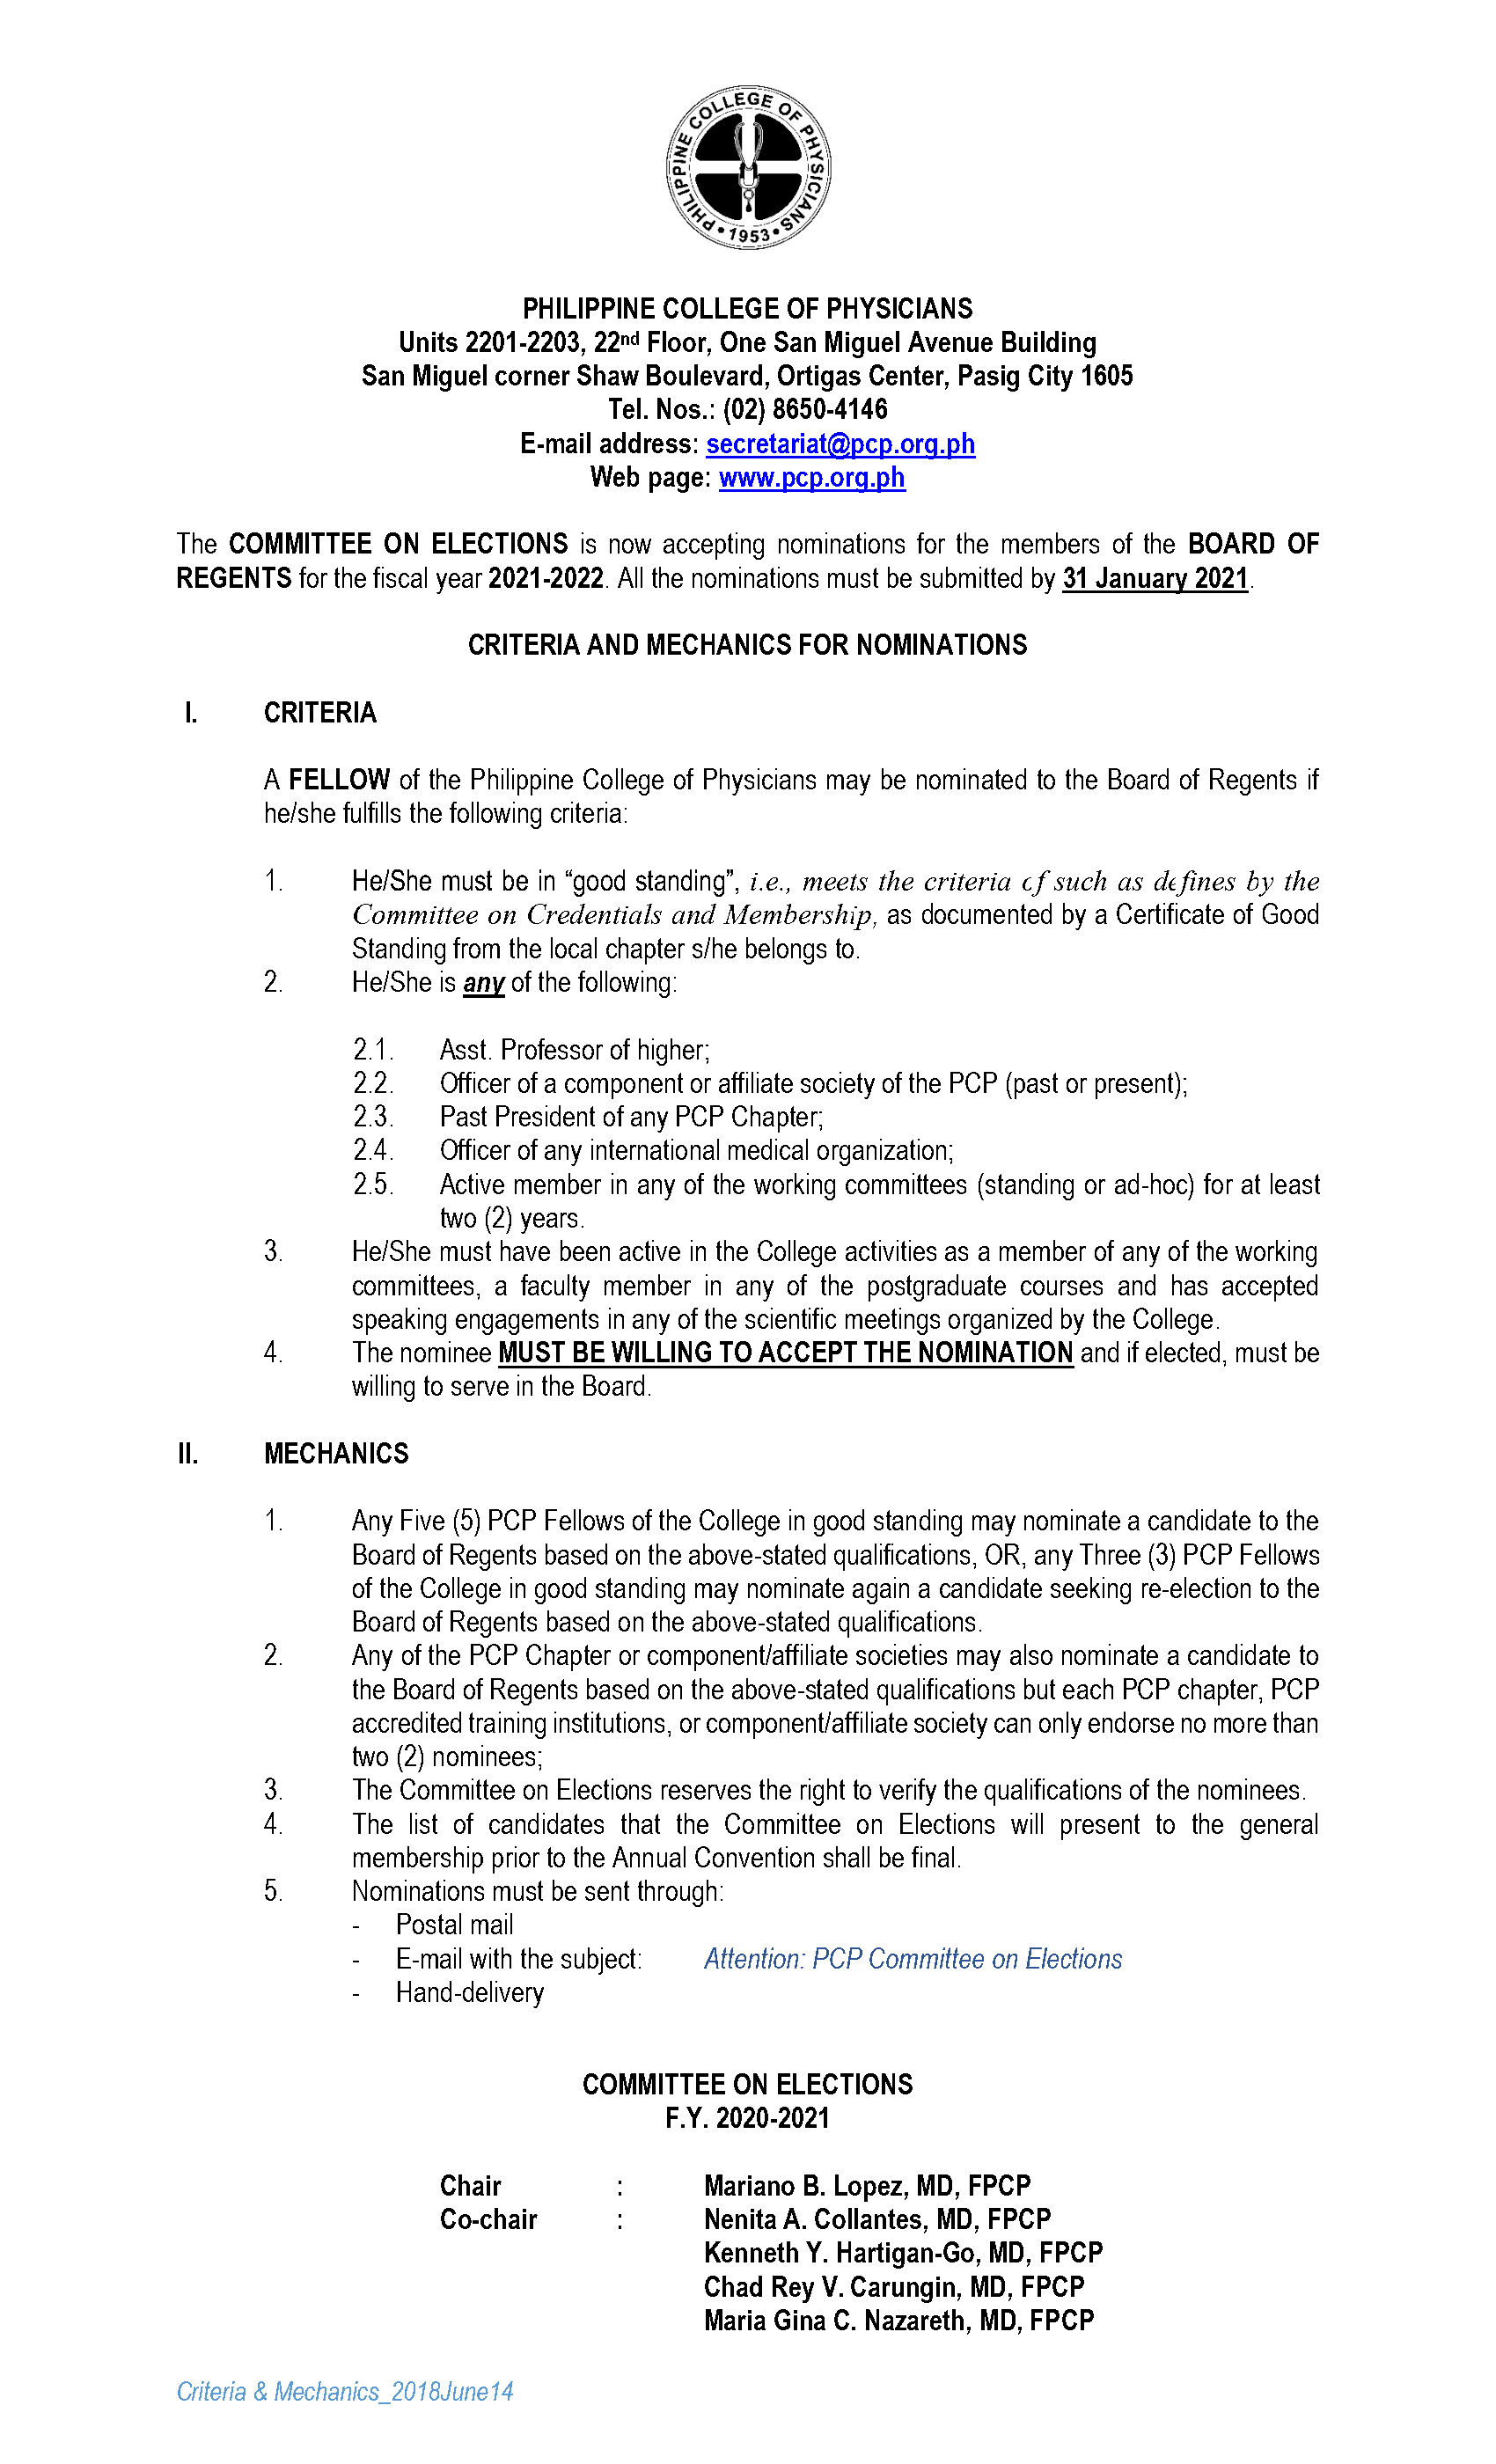 BOR 2021to2022 CriteriaMechanics NominationForm Page1